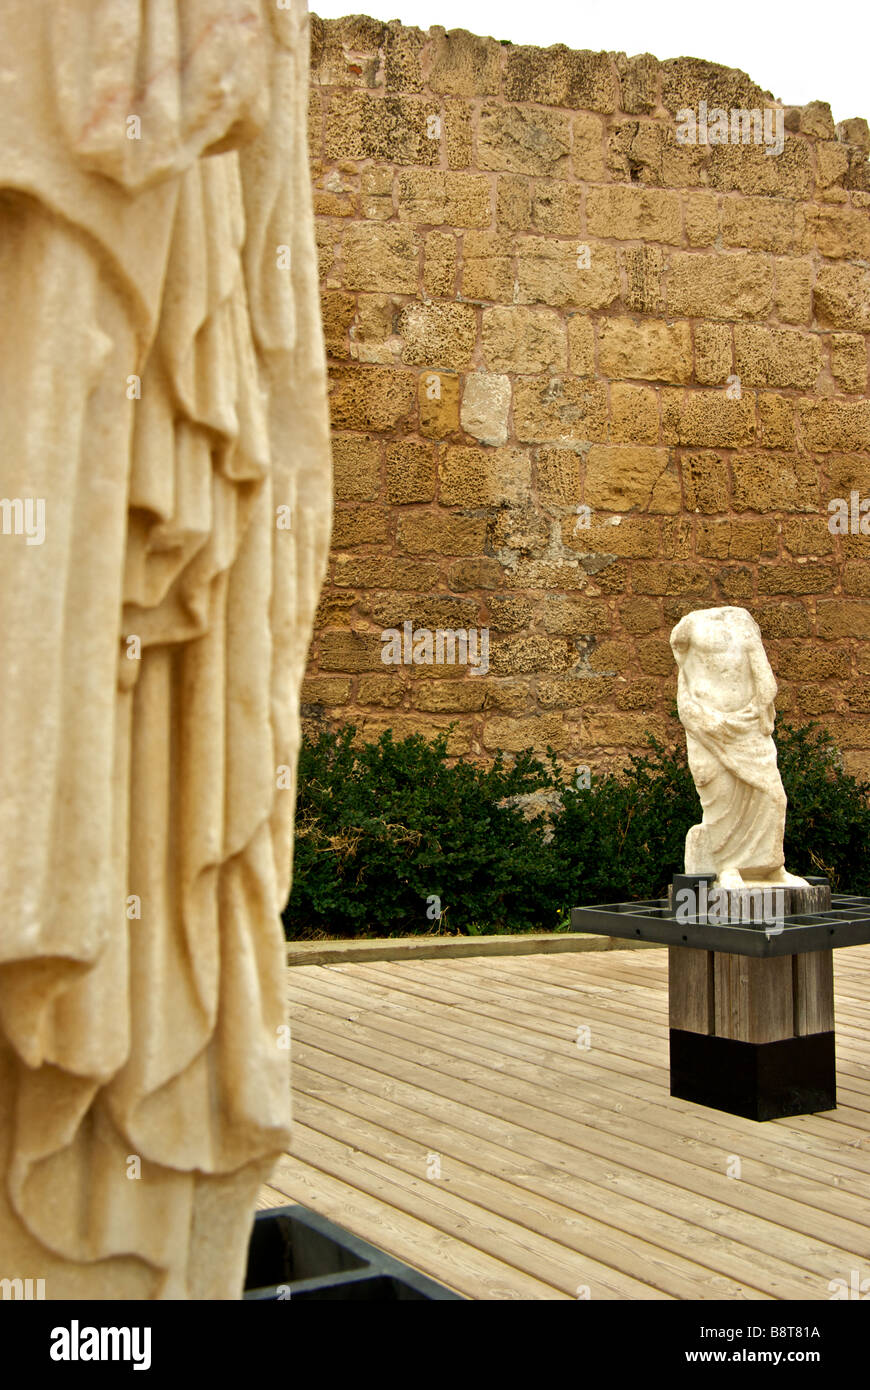 Ancient Wall Sculptures Stock Photos & Ancient Wall Sculptures Stock ...